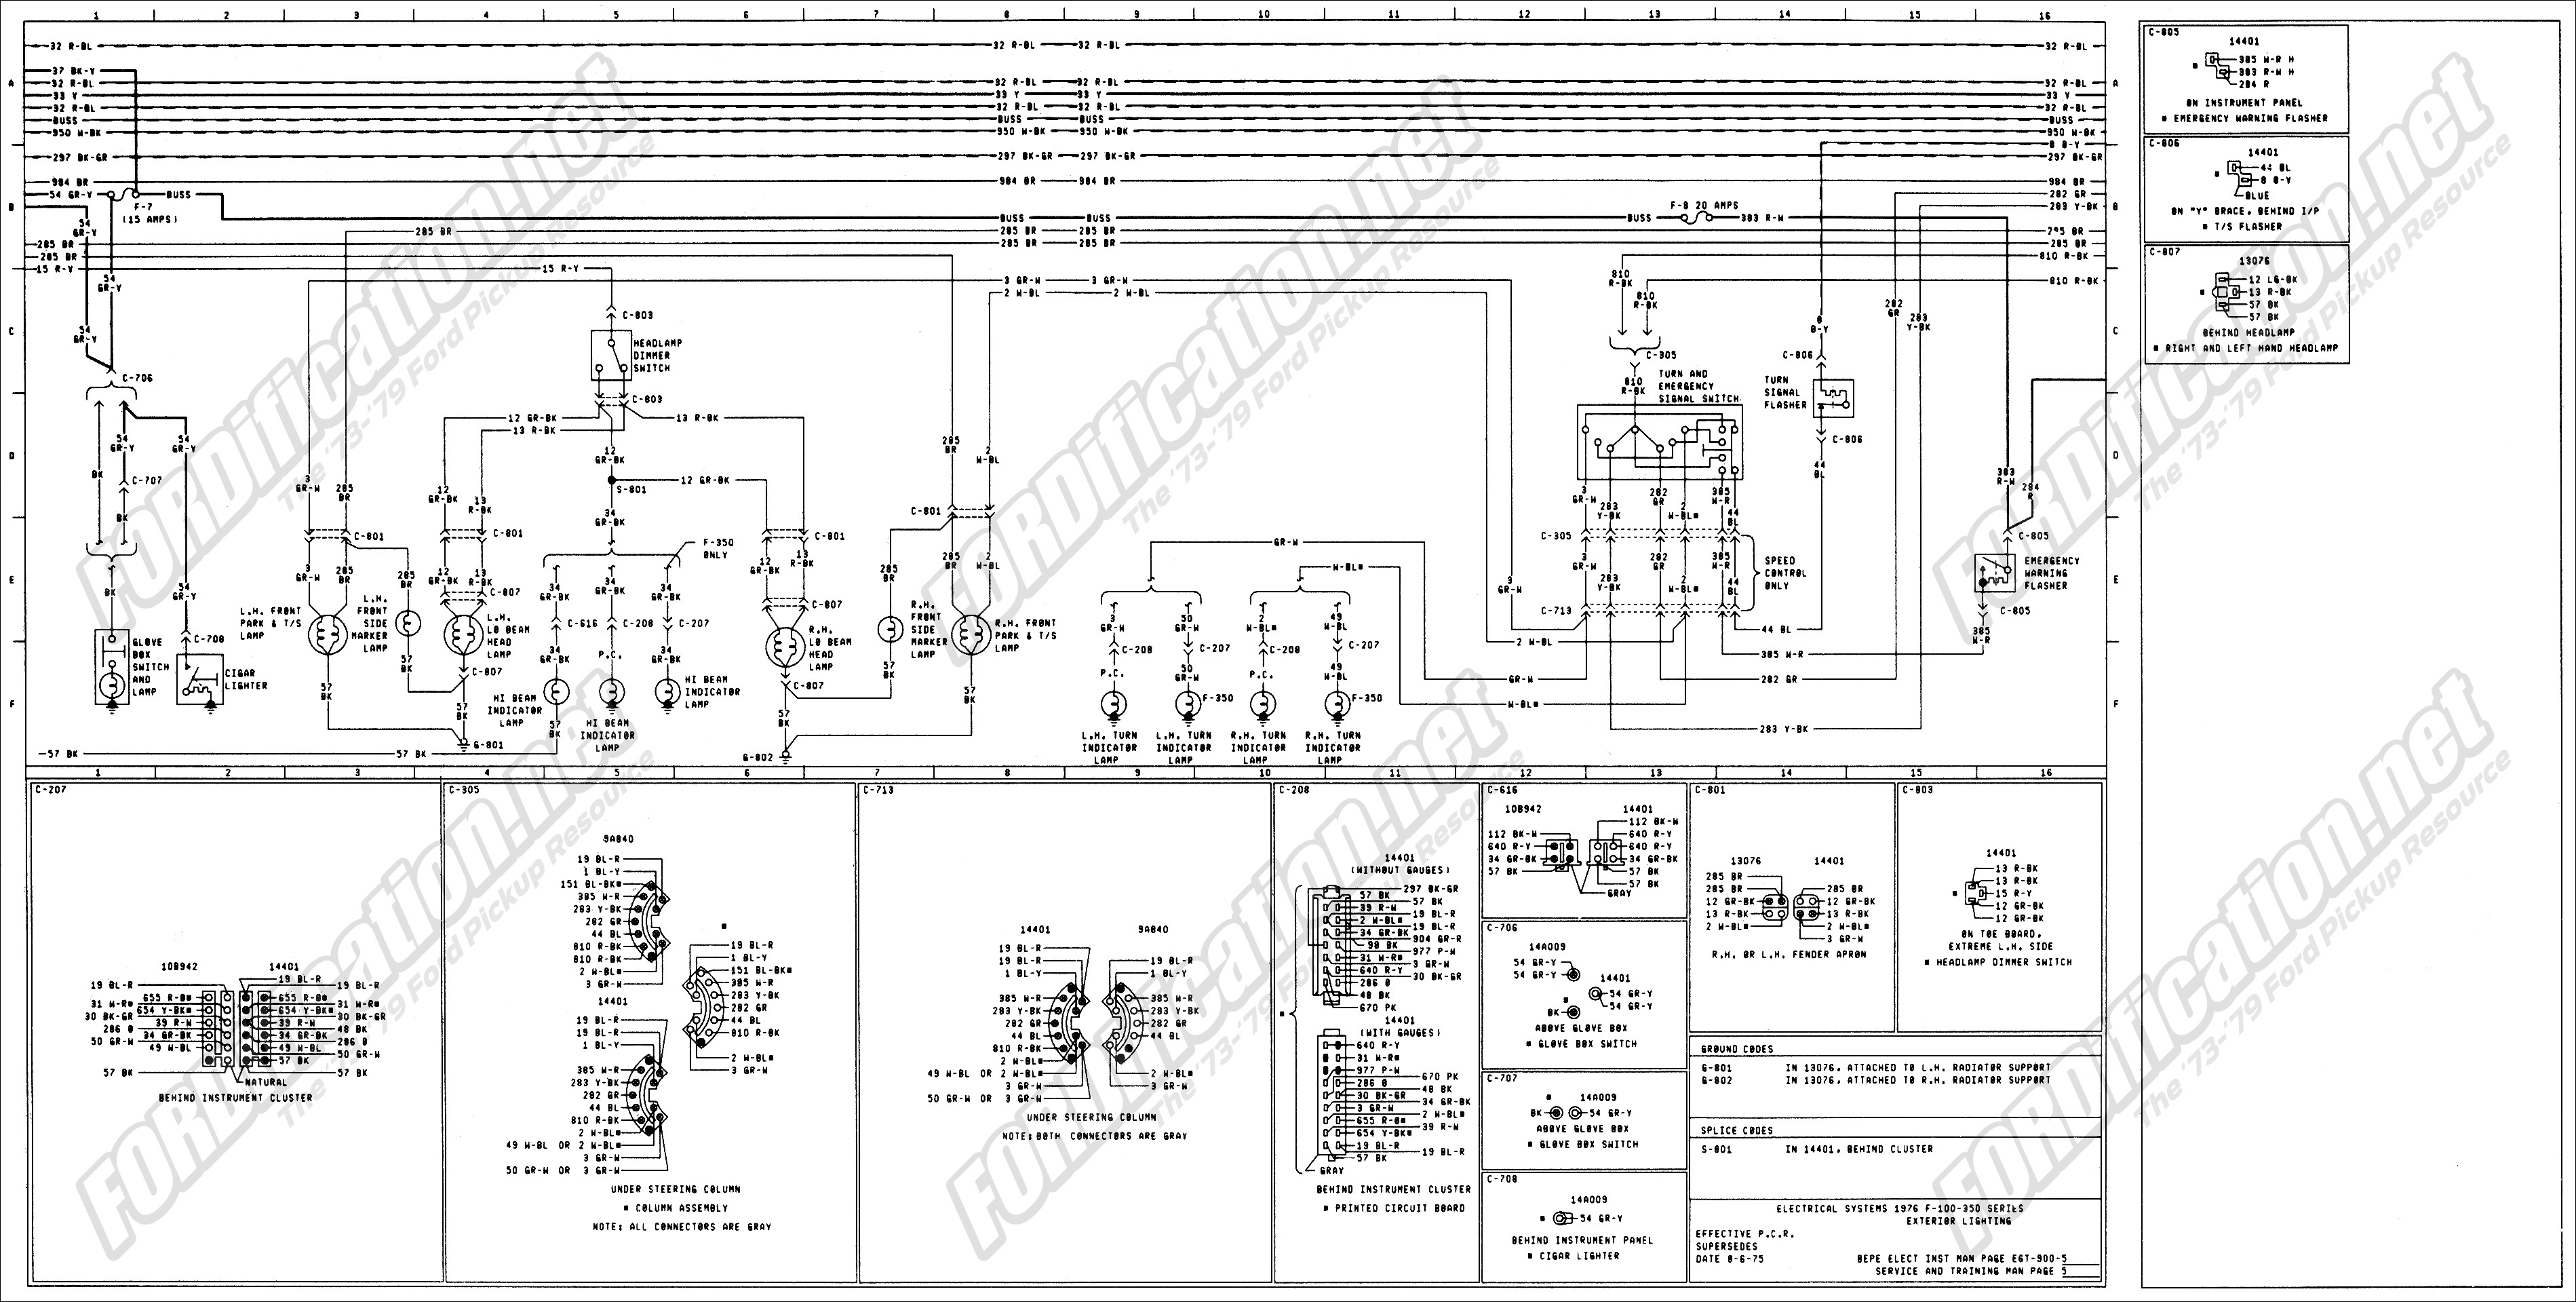 1983 f600 ford wiring diagram download wiring diagram1975 ford truck wiring diagrams wiring diagram1983 f600 ford wiring diagram wiring diagramwiring diagram for 1975